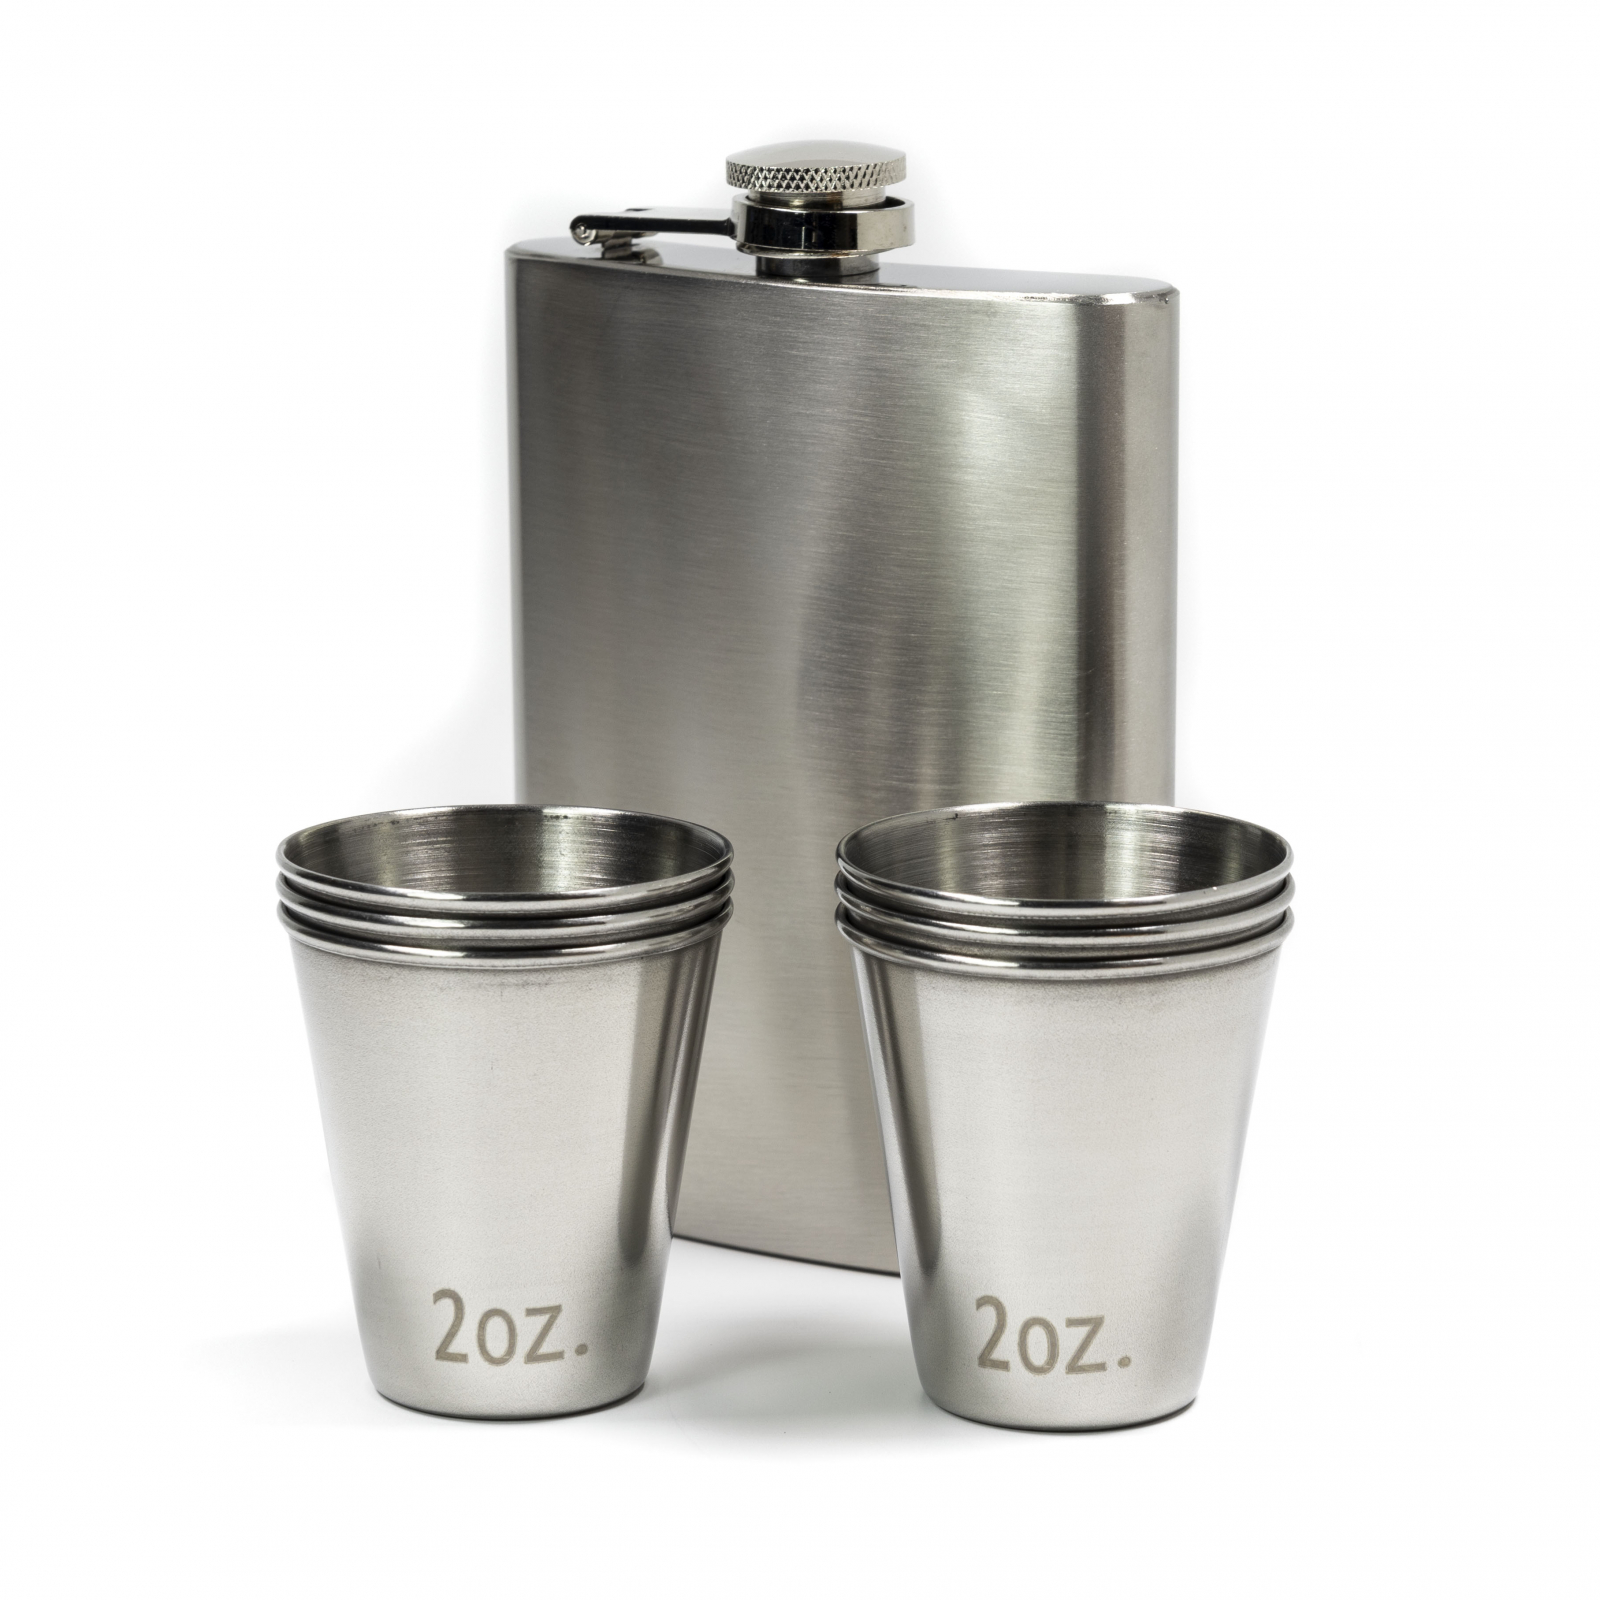 ASR Outdoor Stainless Steel Shot Glasses Hip Flask Combo 7pc